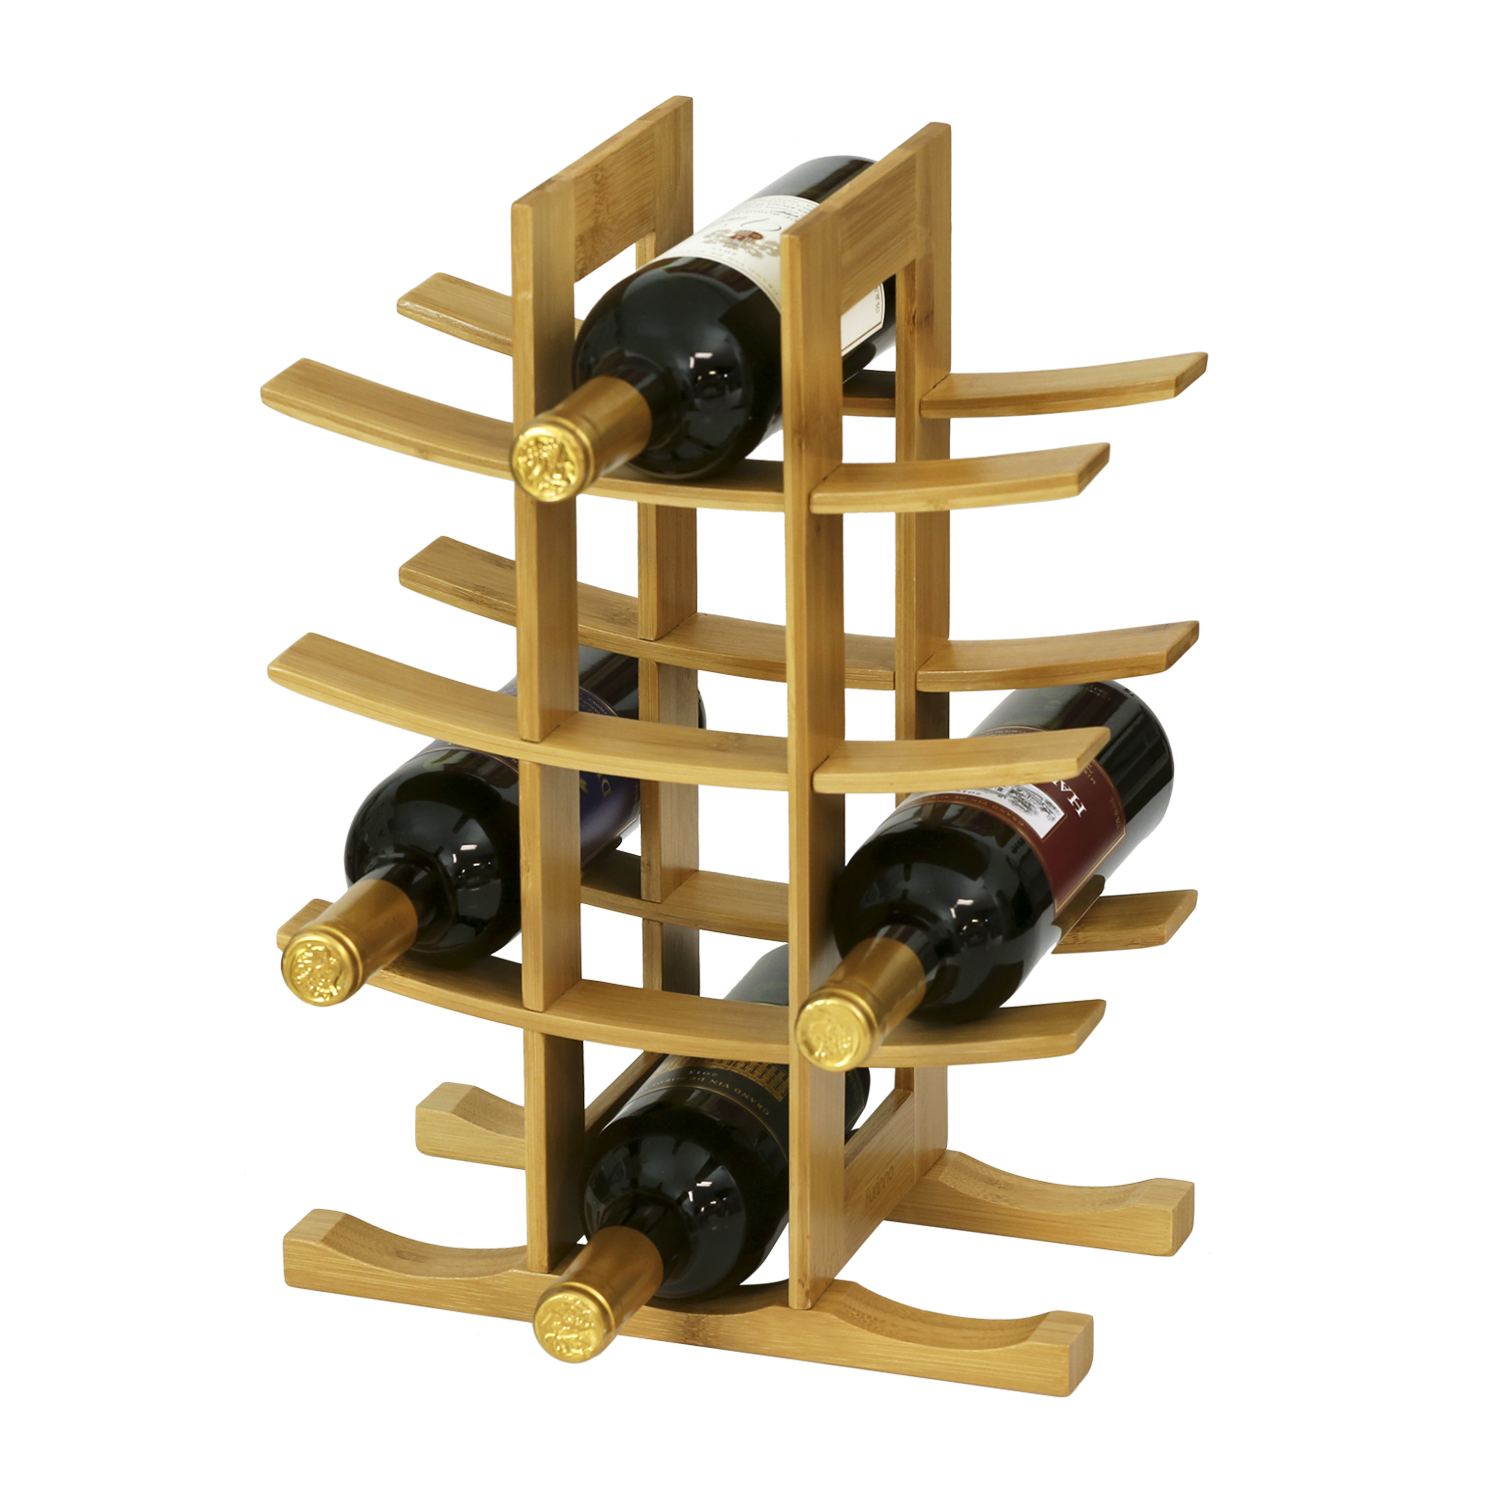 Furinno DaPur Bamboo 12-Bottle Wine Rack, FK9137 by Furinno